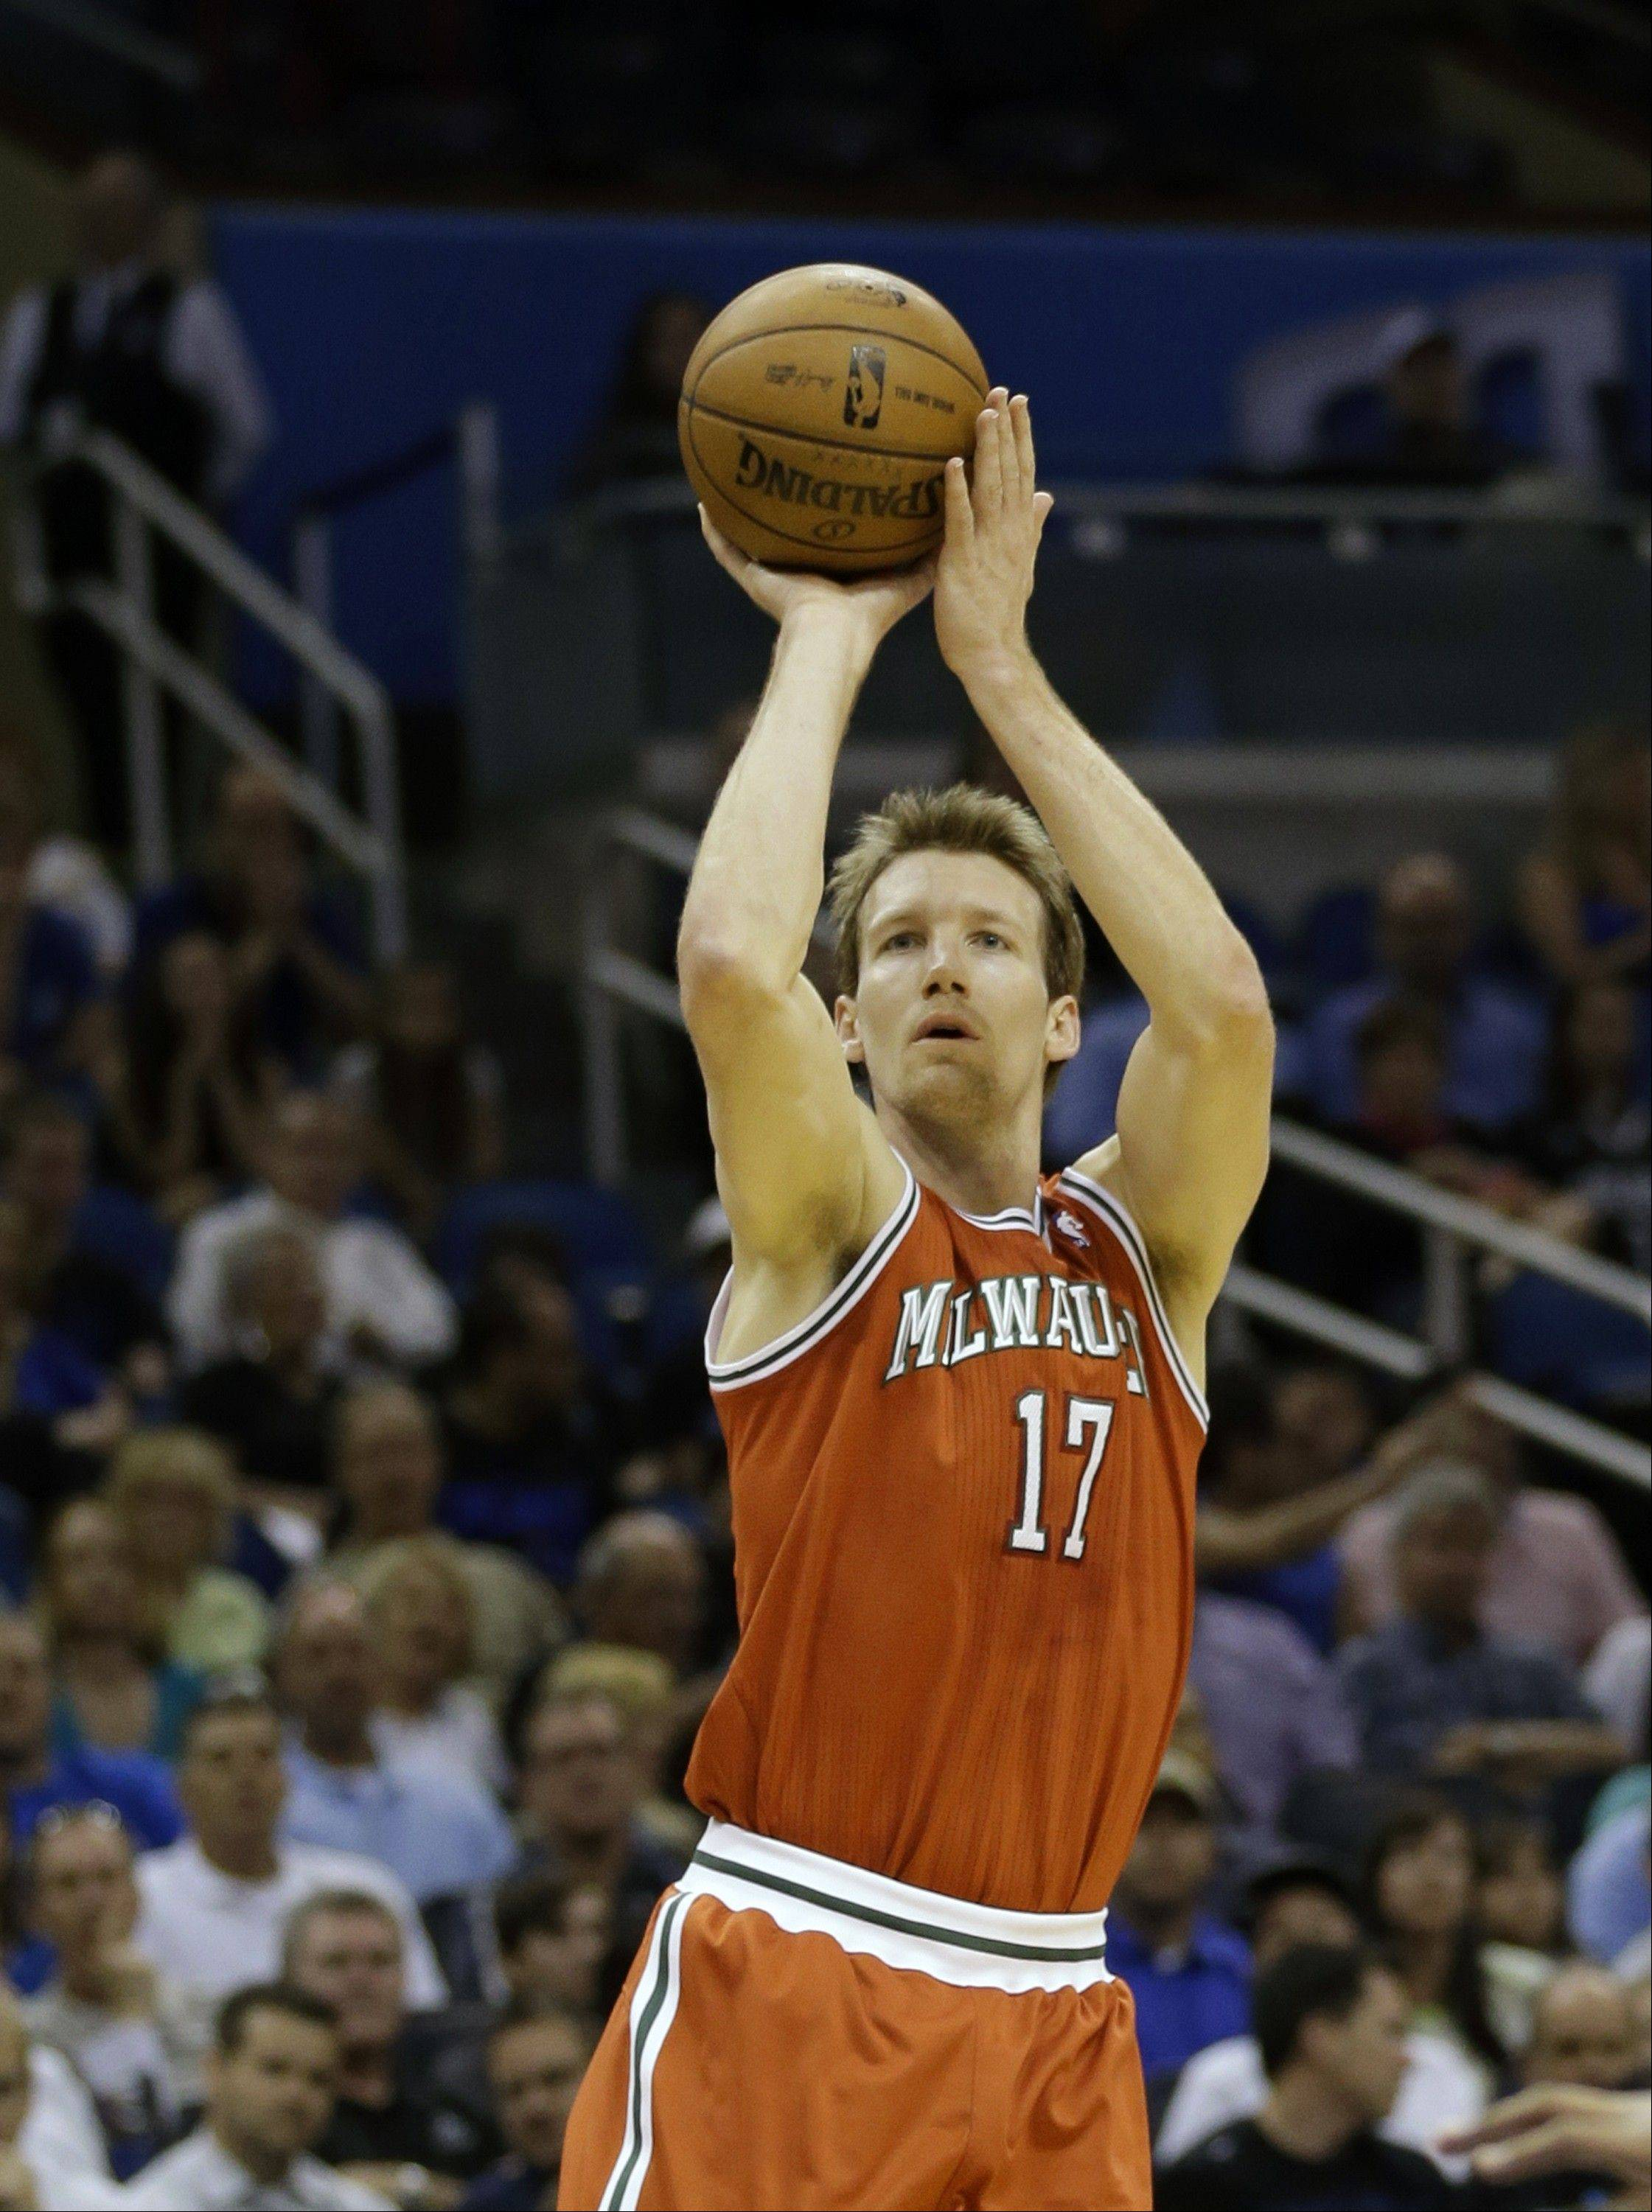 Mike Dunleavy has improved his three-point shooting accuracy in recent years and should help spread the floor for the Bulls next season.